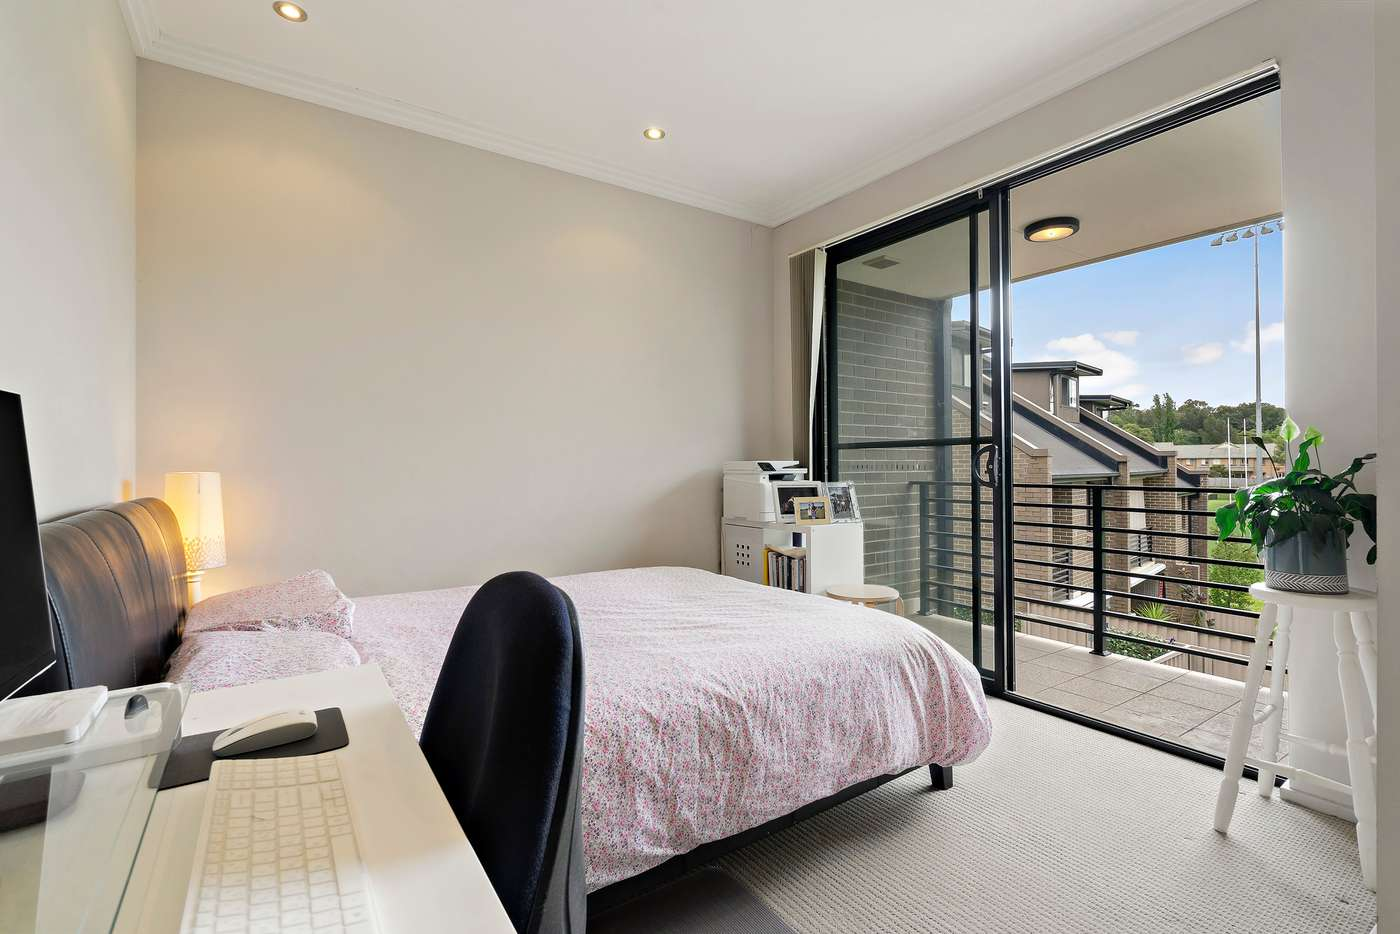 Sixth view of Homely townhouse listing, 6/96-100 Gladstone Street, North Parramatta NSW 2151